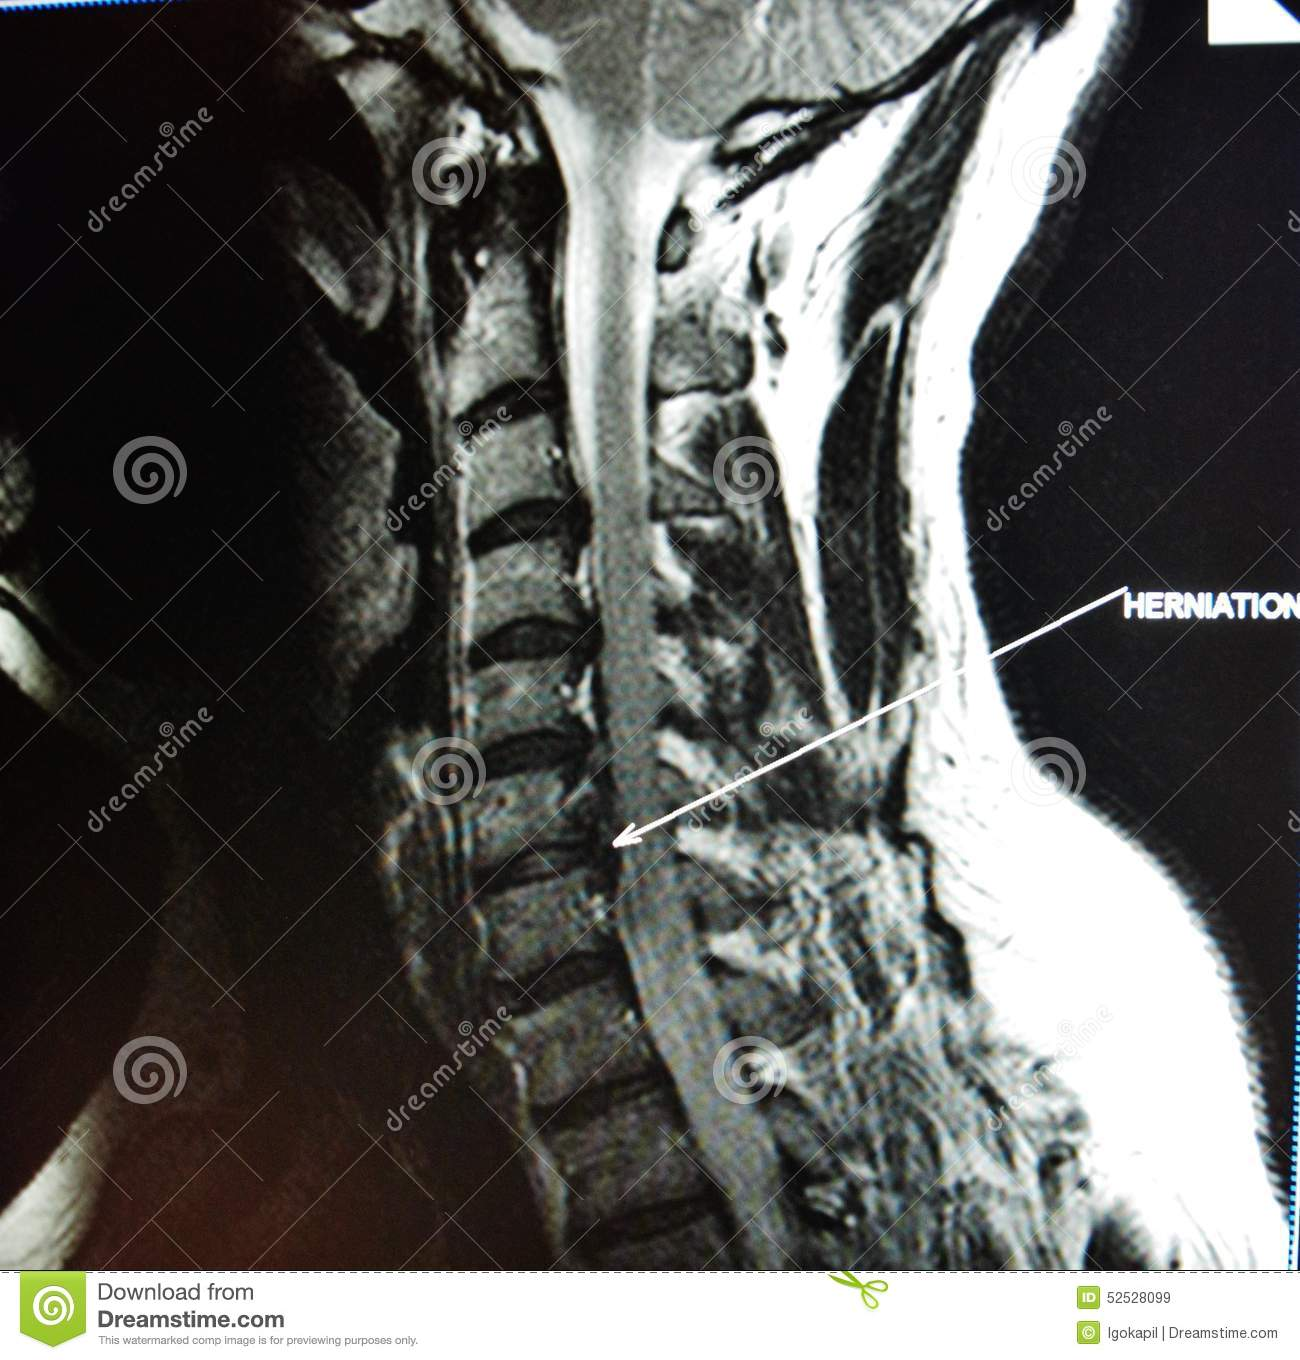 Mri of cervical spine stenosis stock photo image of colorful mri of cervical spine stenosis royalty free stock images ccuart Image collections